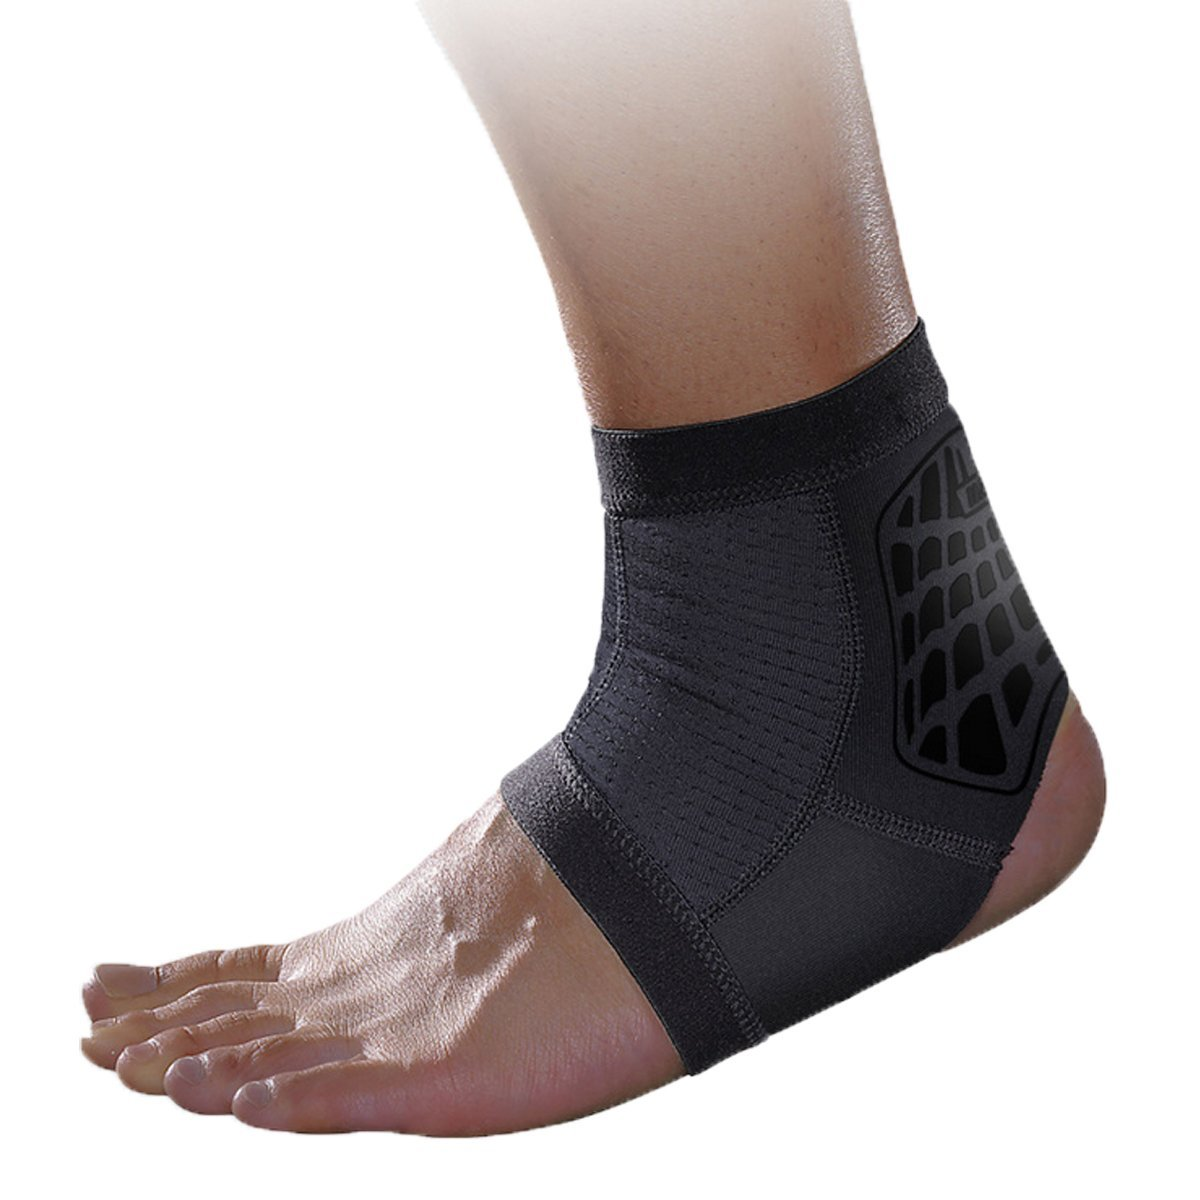 Panegy Compression Ankle Support Sleeve Reduce Muscle Fatigu Soft and Breathable Foot Brace for Running Badminton